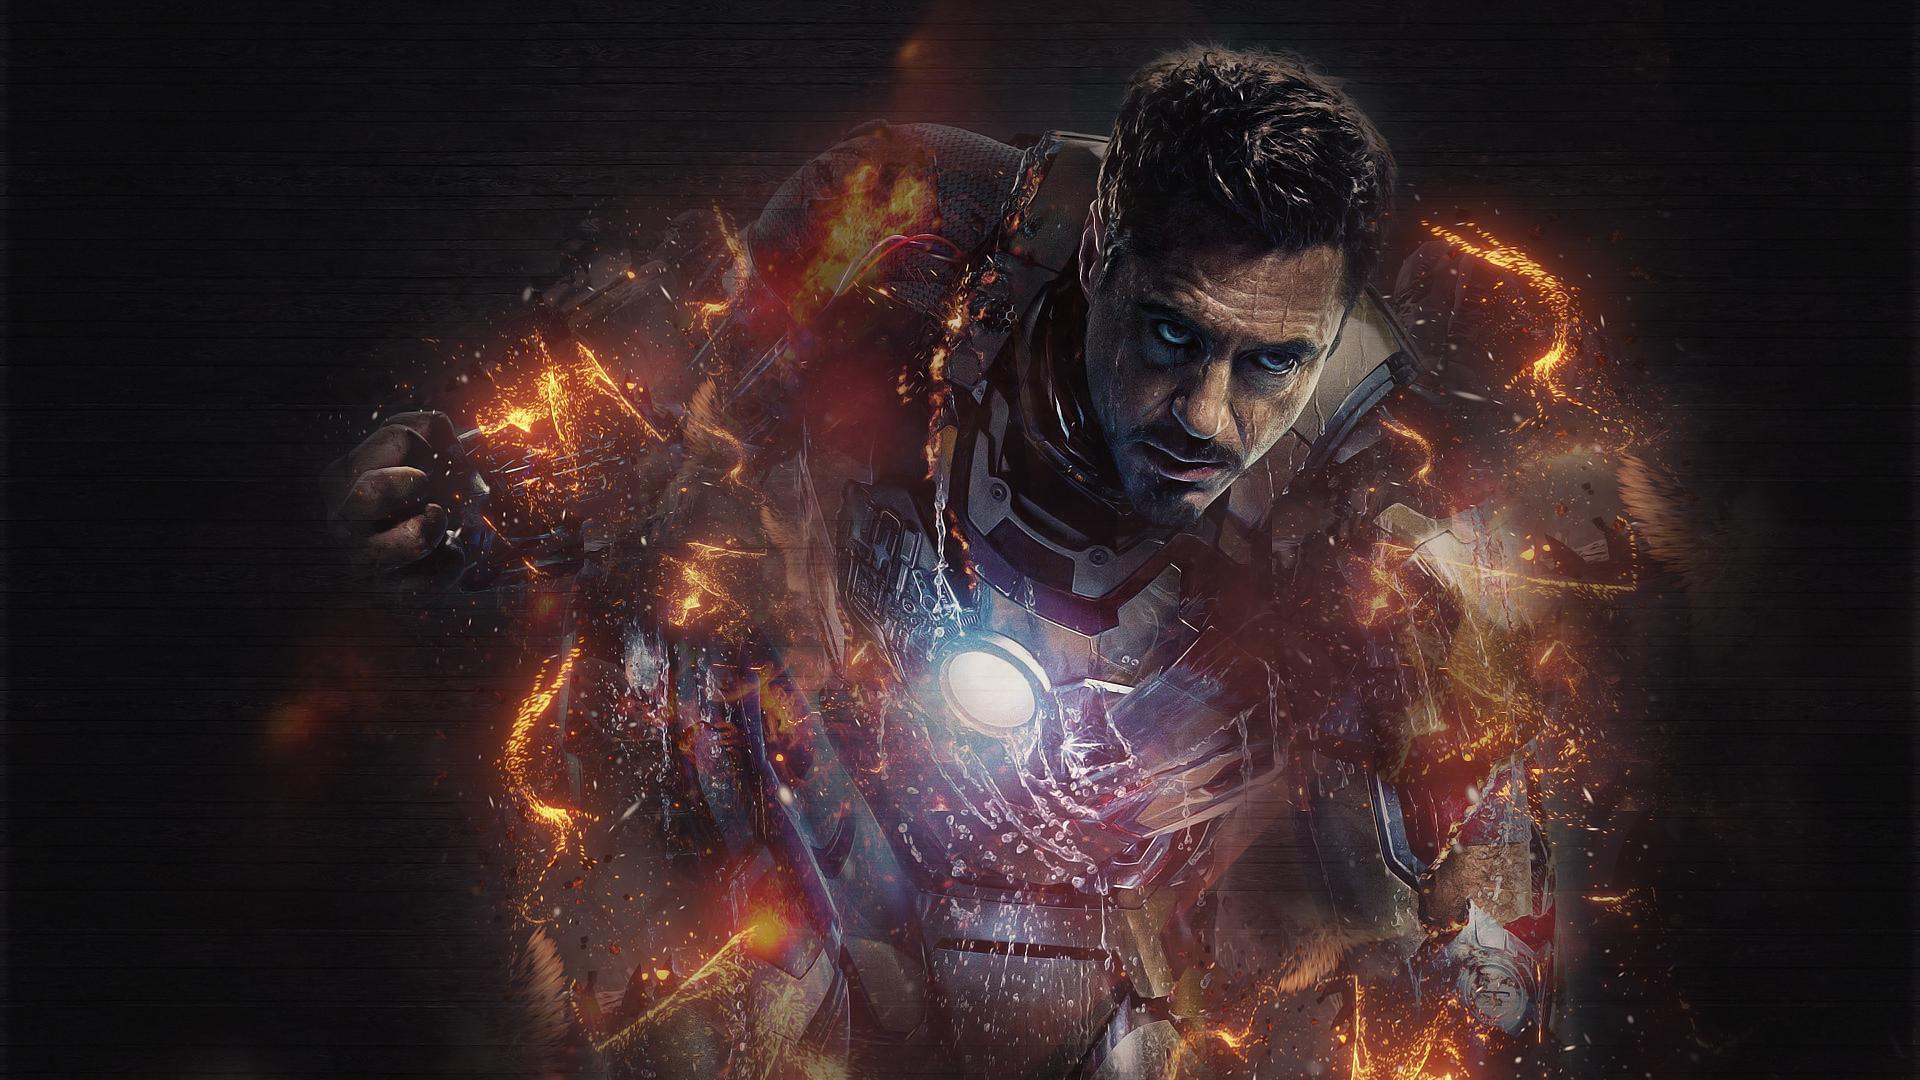 Wallpapers For > Iron Man Avengers Suit Wallpapers